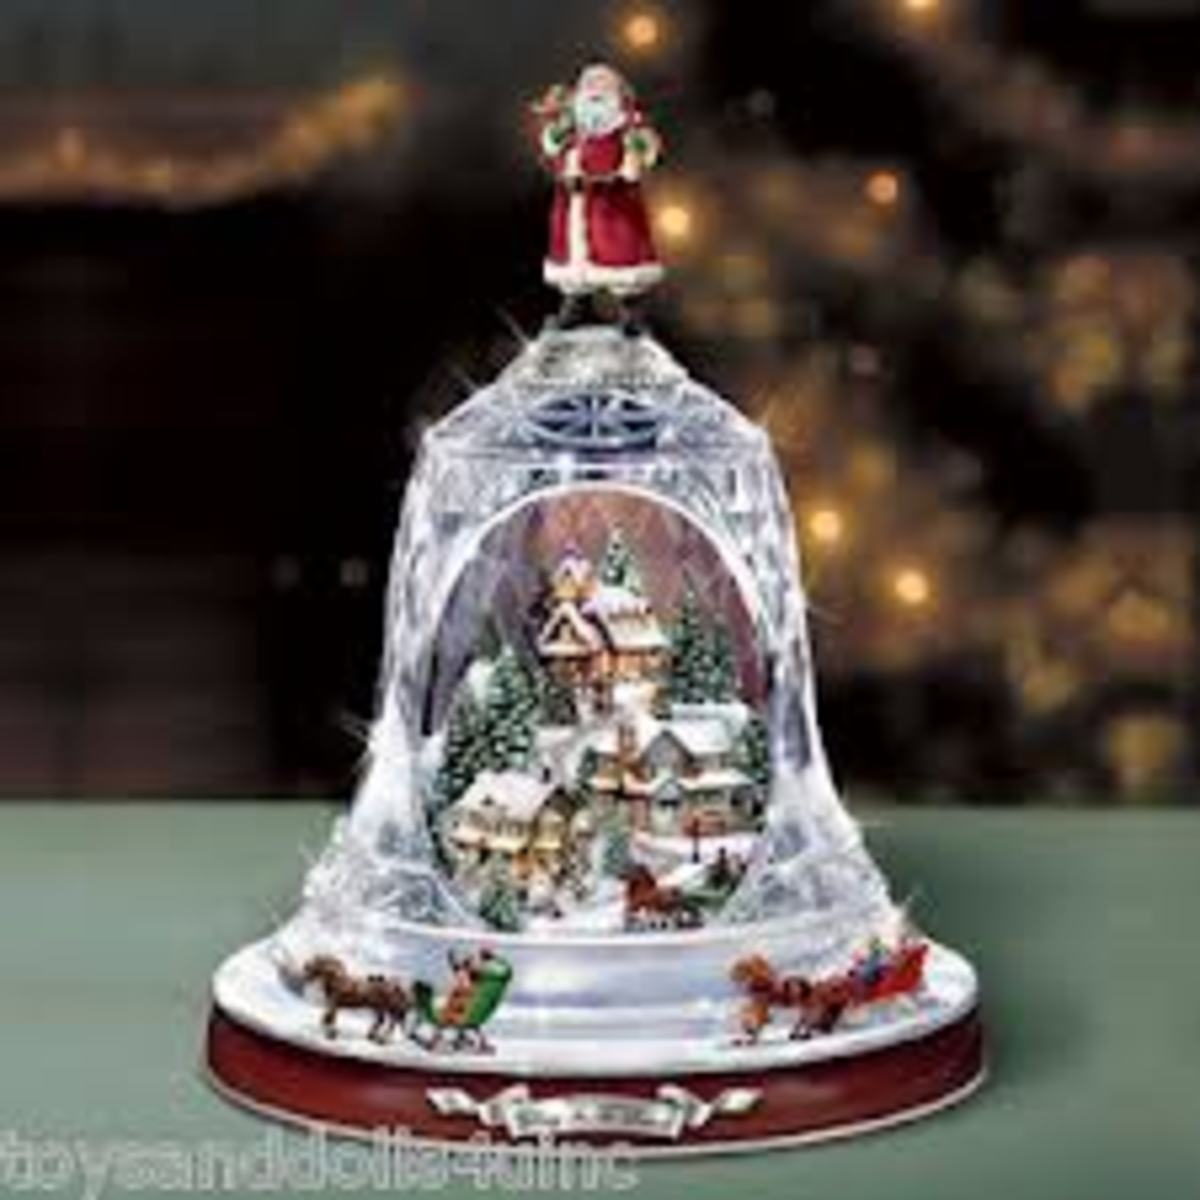 The crystal Christmas bell